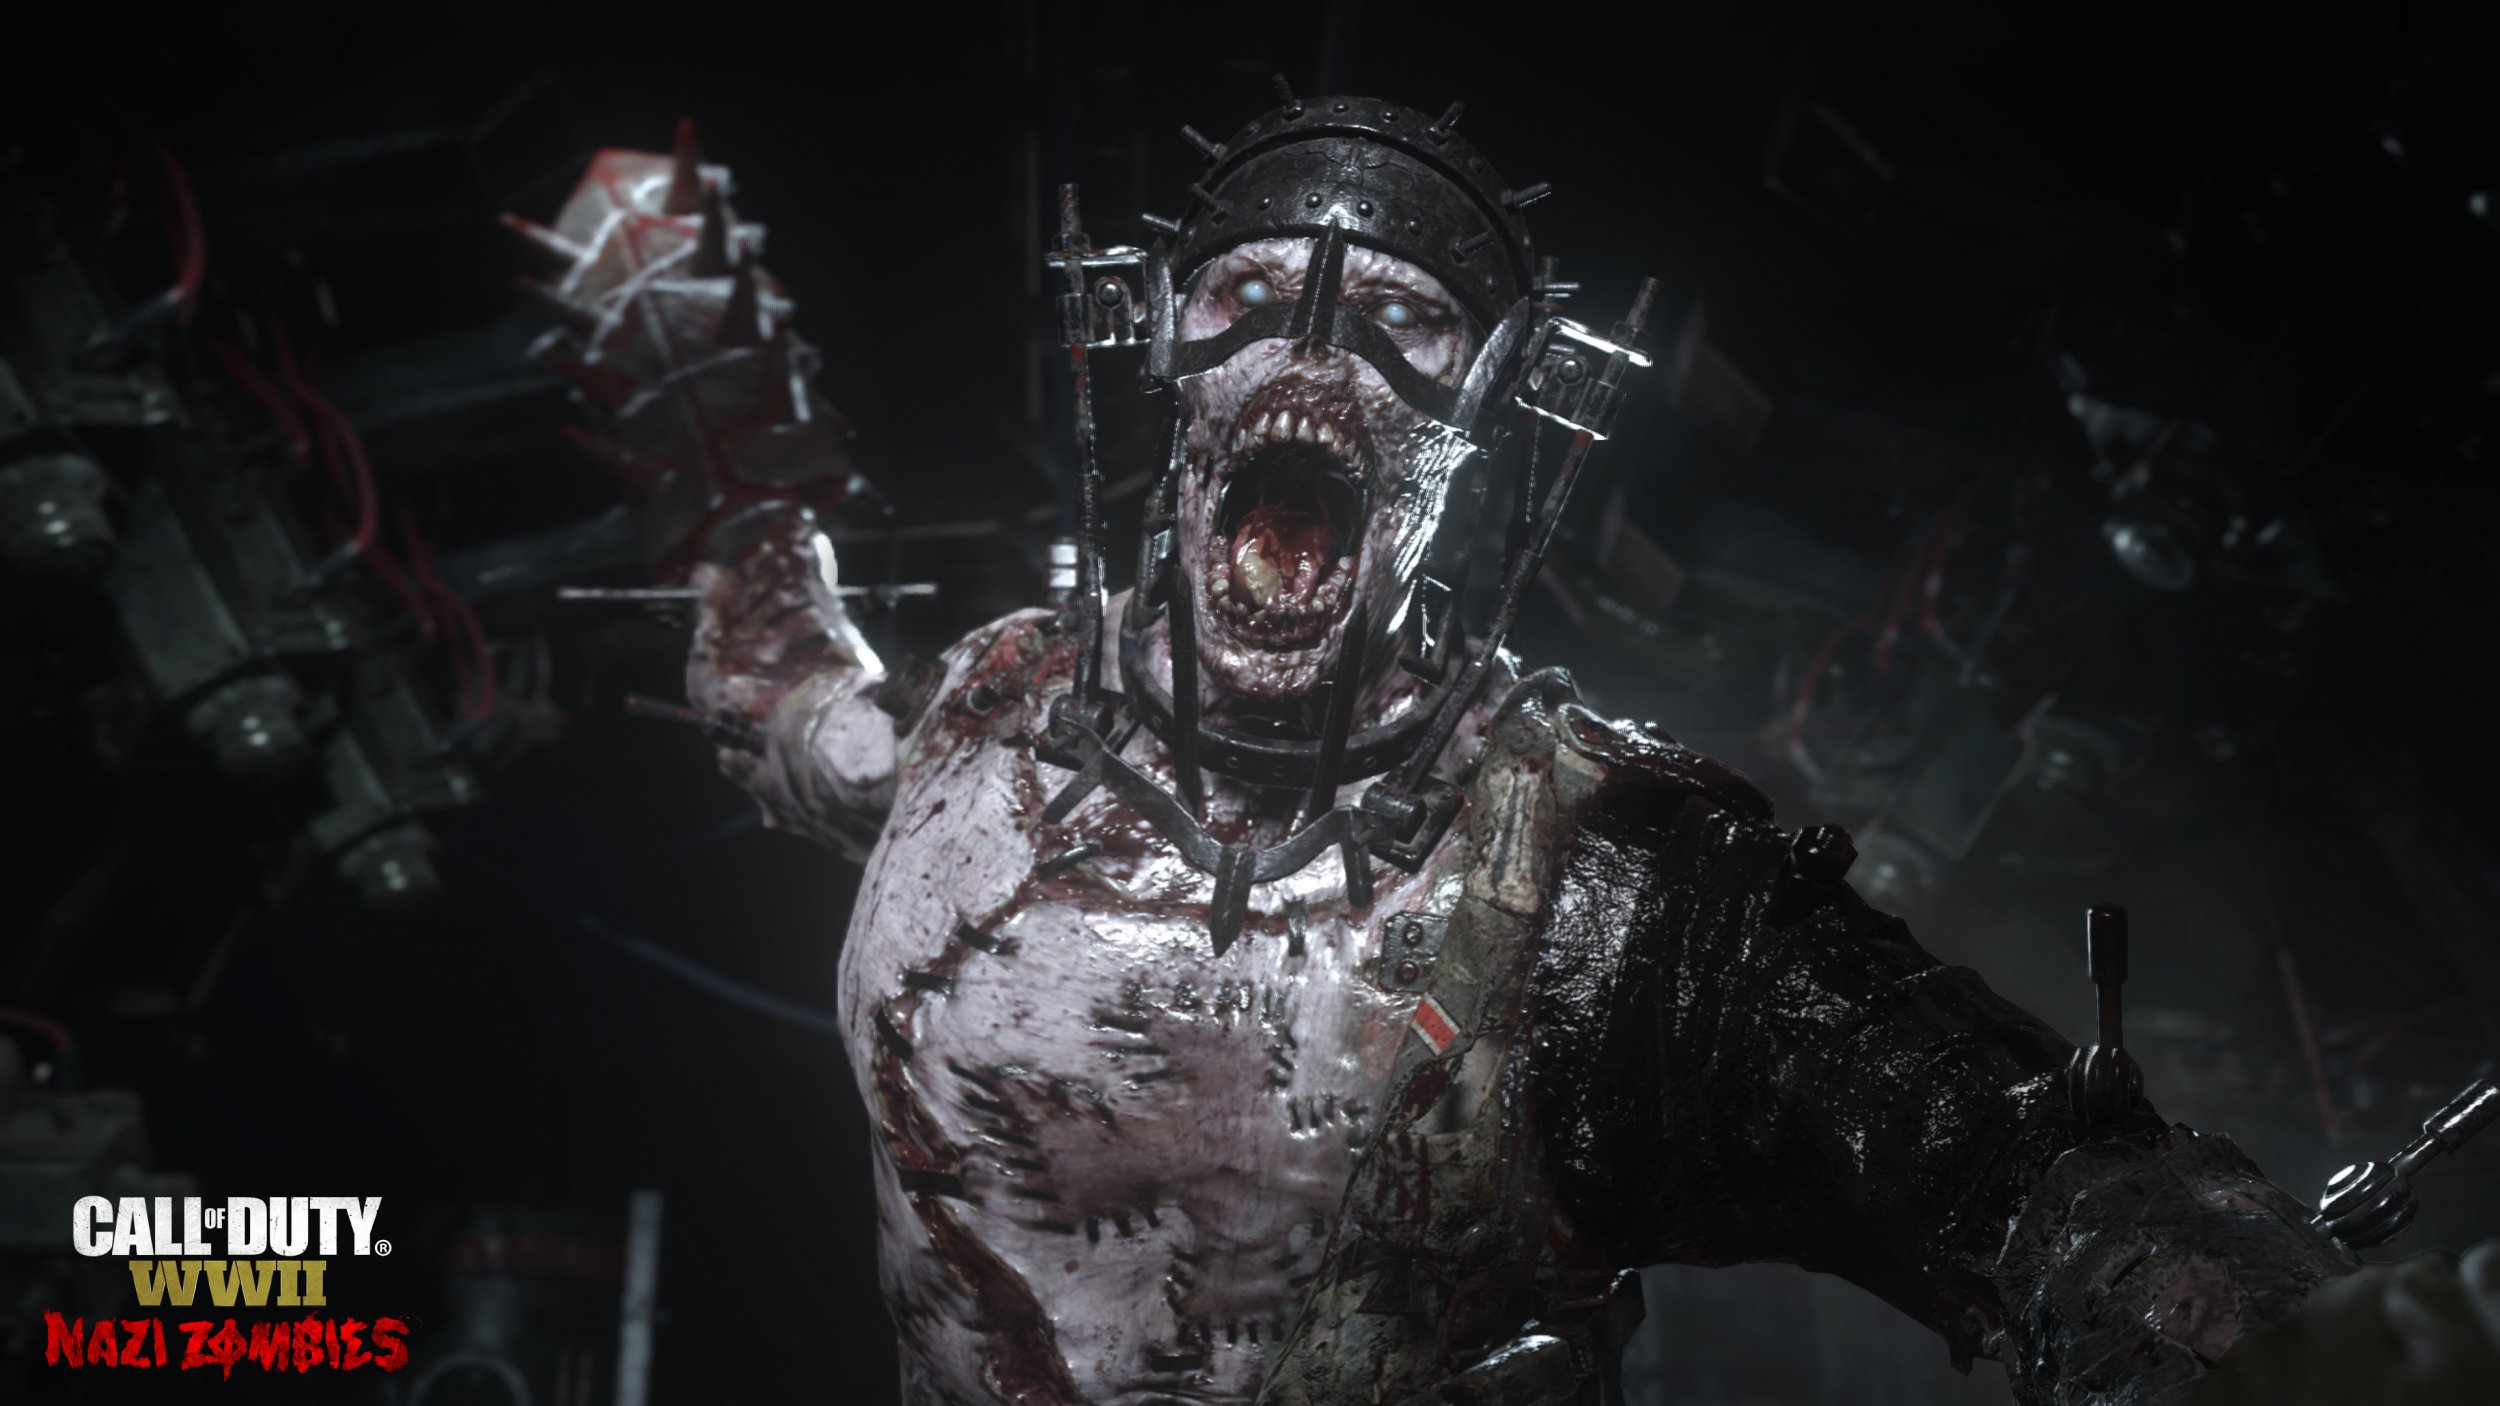 Call of Duty: WWII Nazi Zombies 4